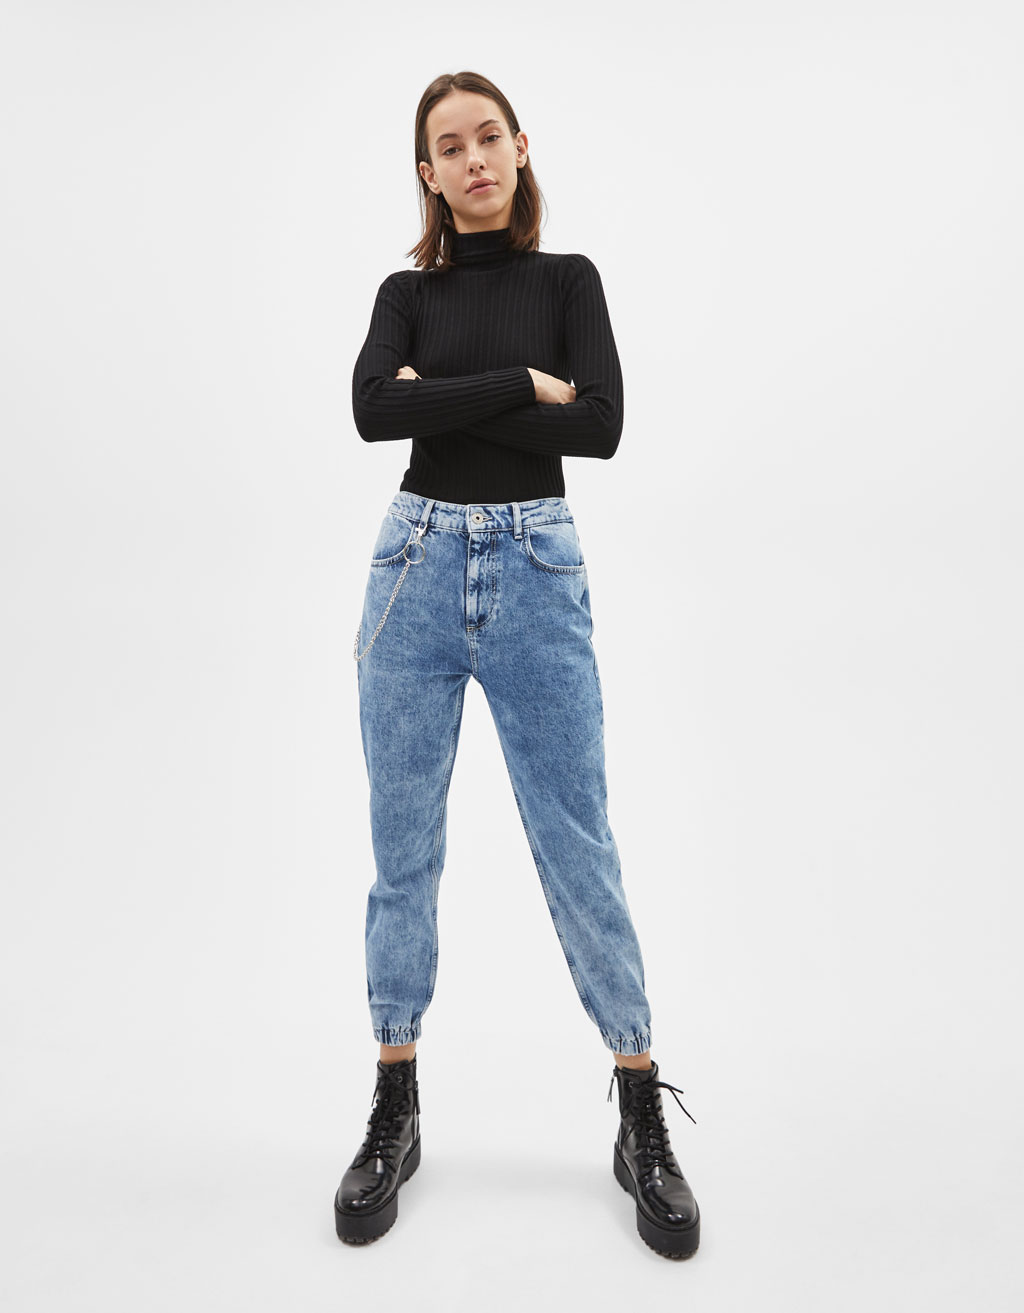 Denim jogging trousers with chain